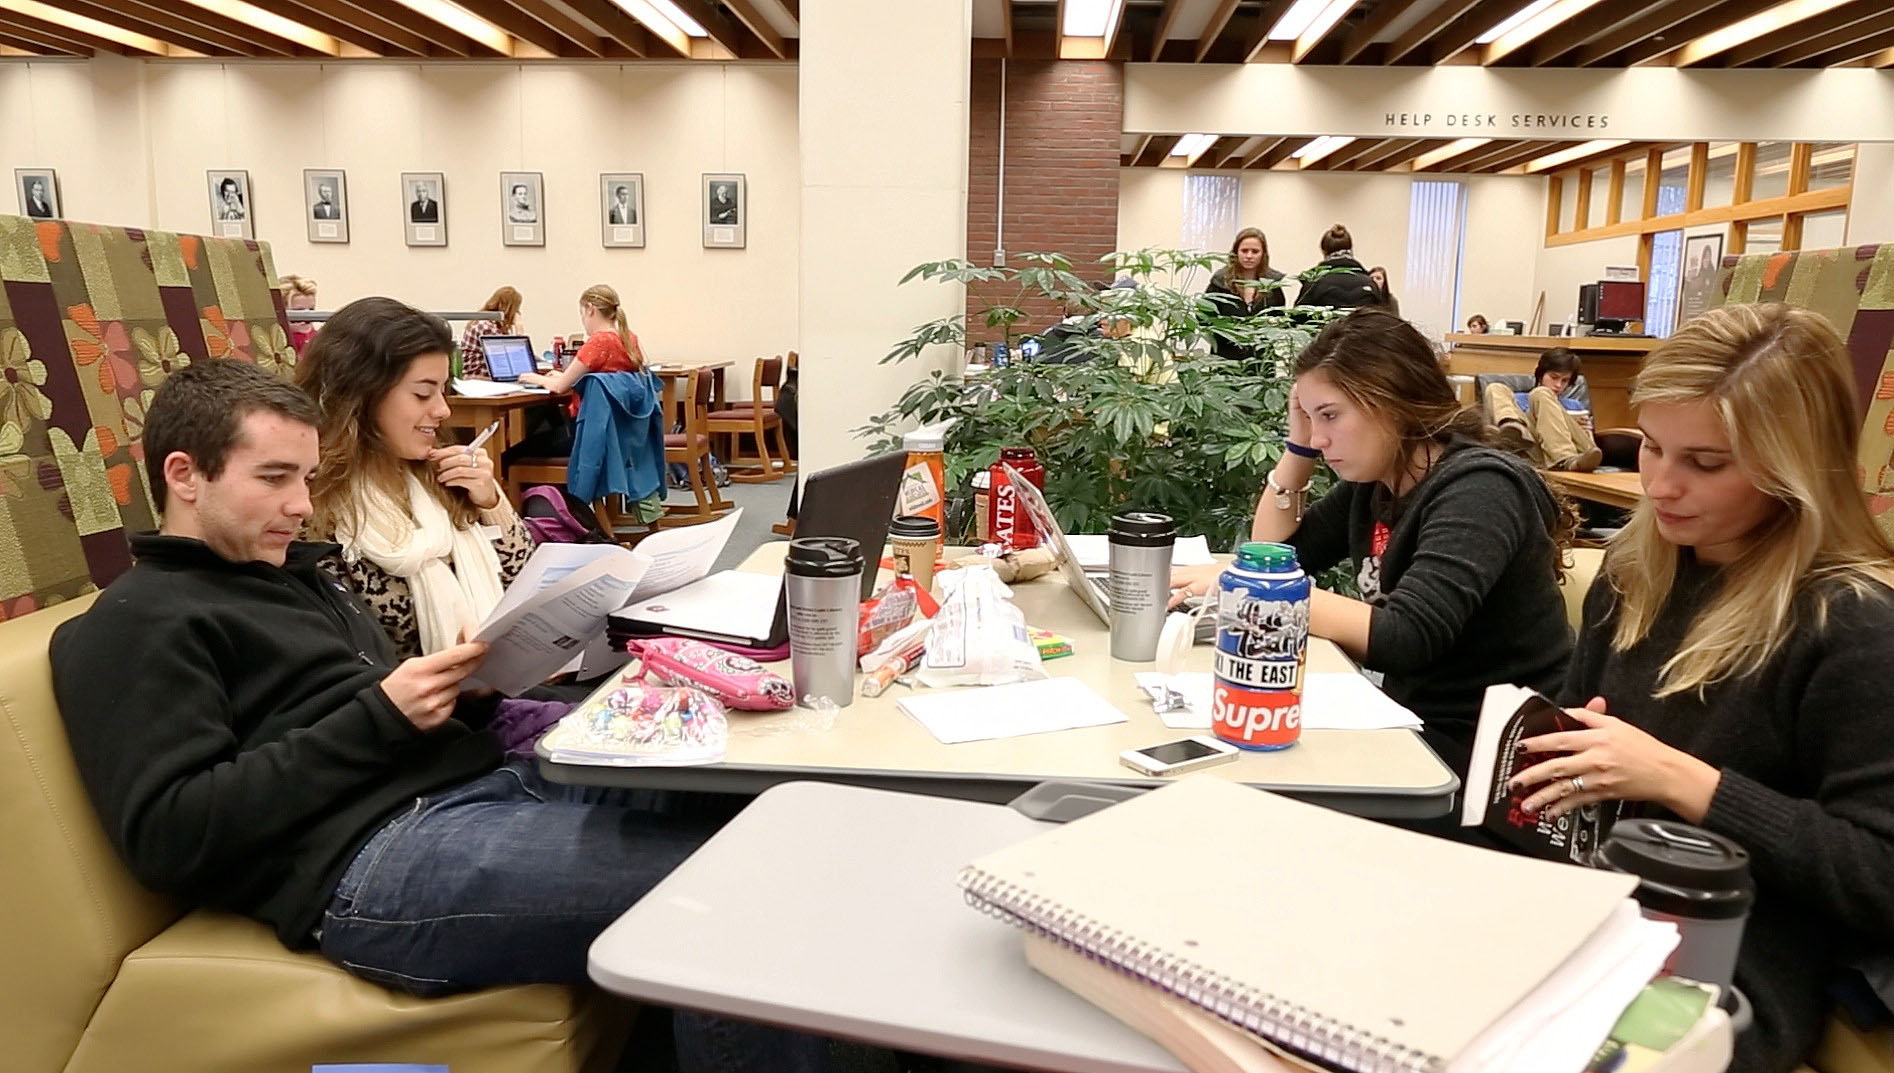 Students are variously engrossed in their work during finals week, fall semester 2012, in Ladd Library. Photograph by Phyllis Graber Jensen/Bates College.